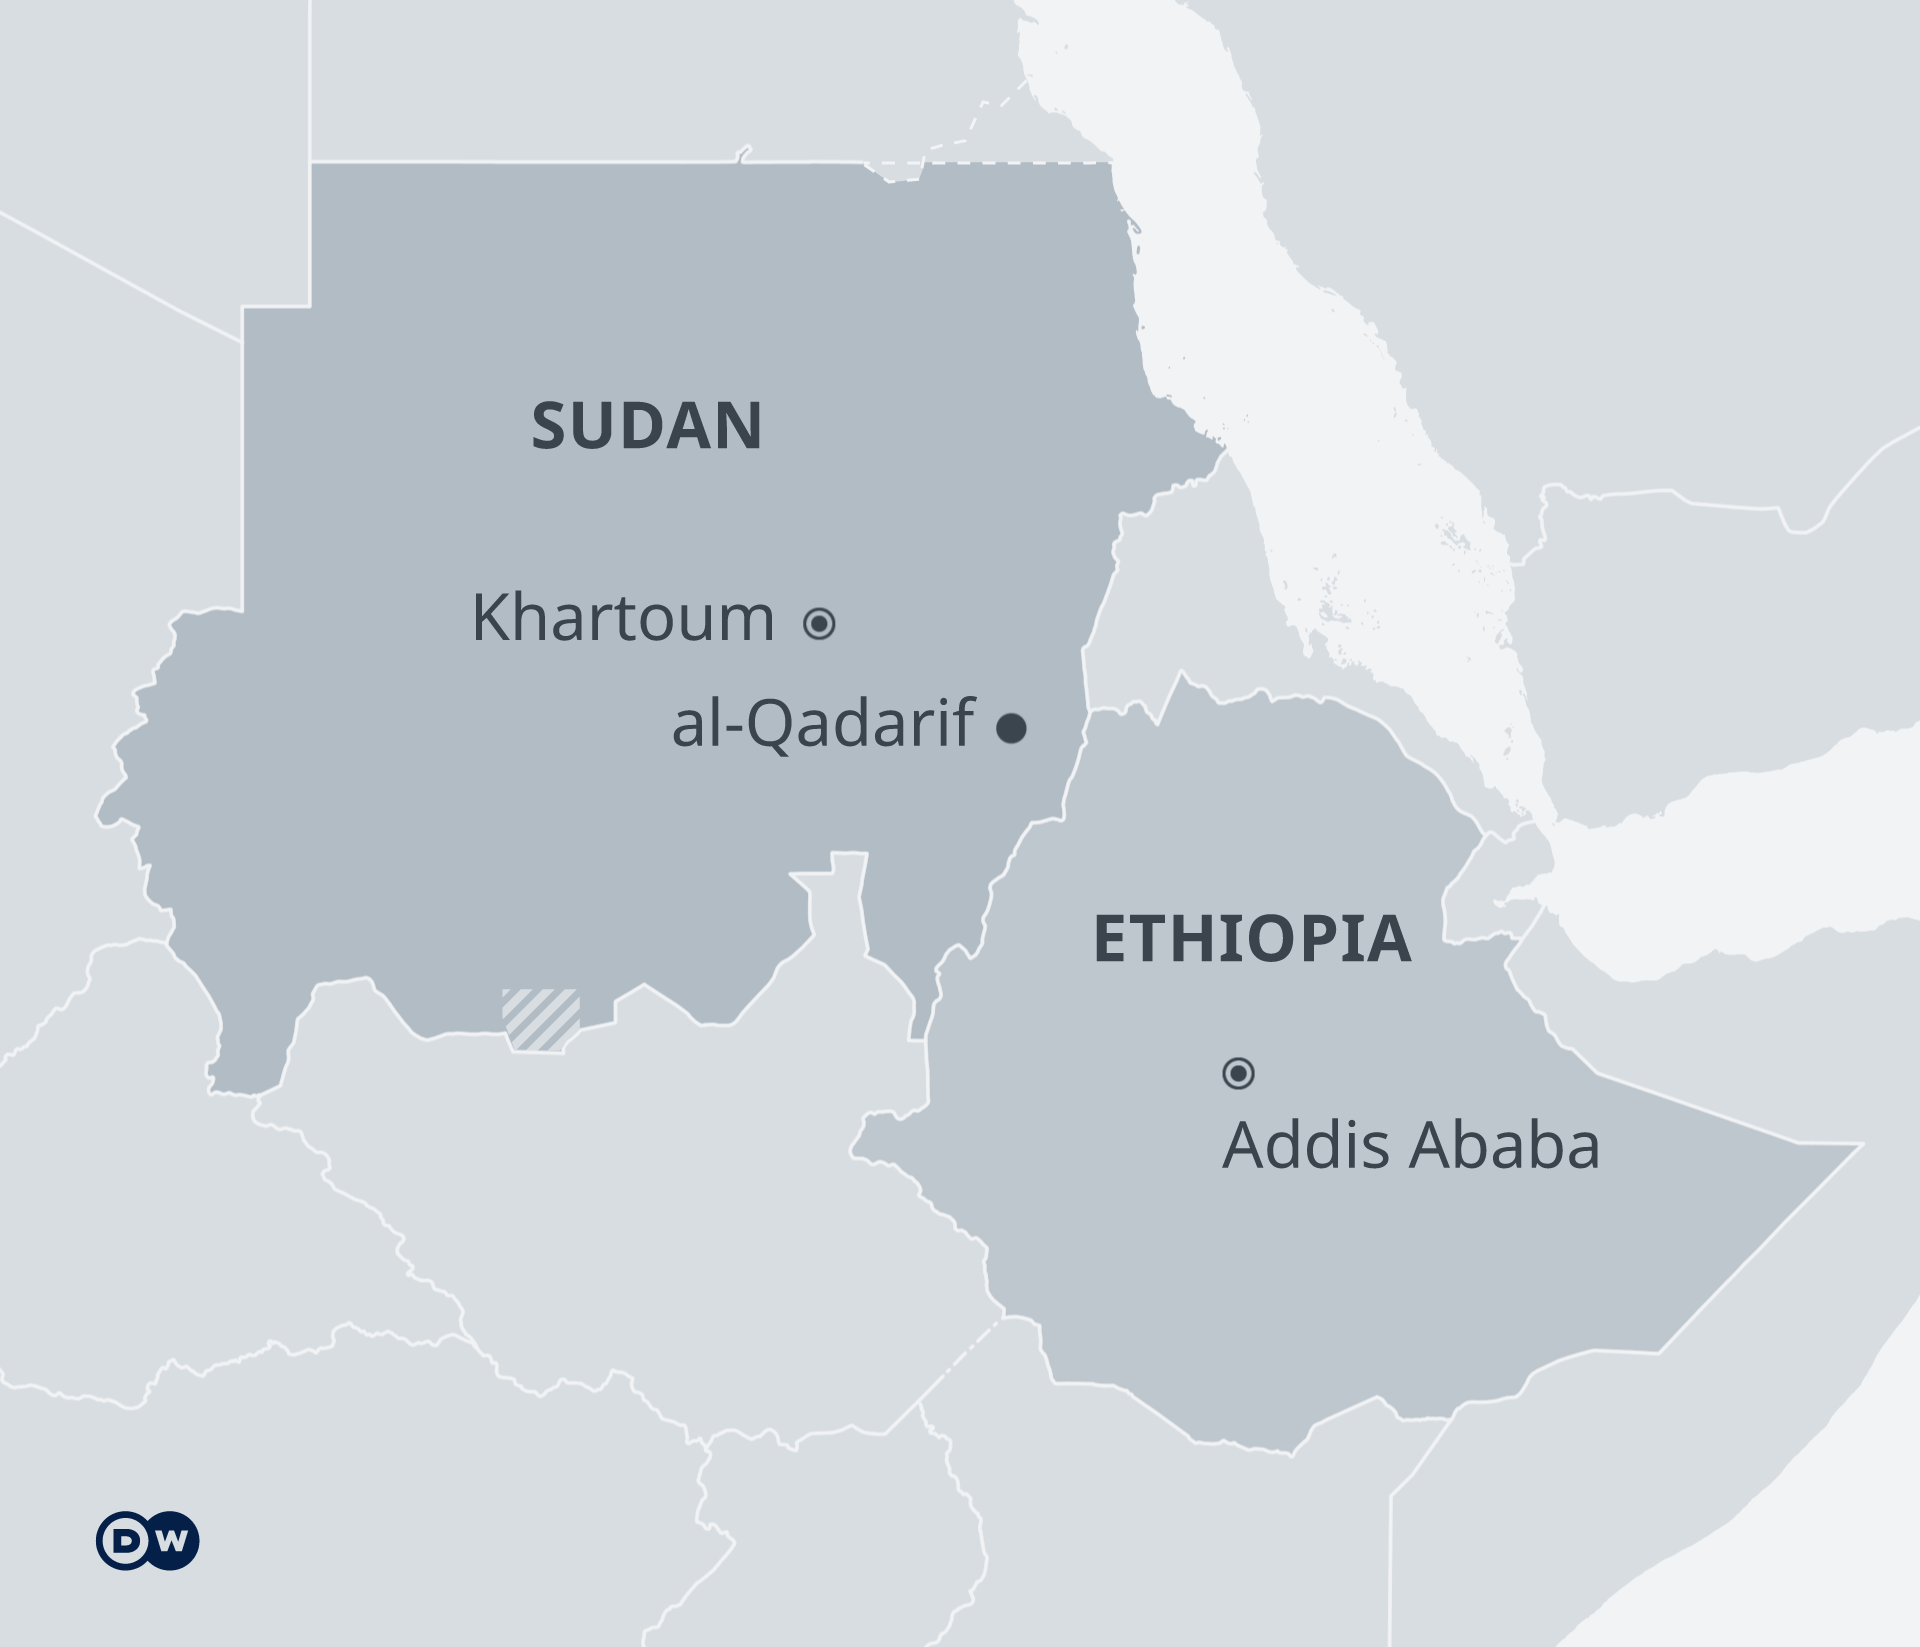 Map showing Sudan's al-Qadarif province next to Ethiopia's border.